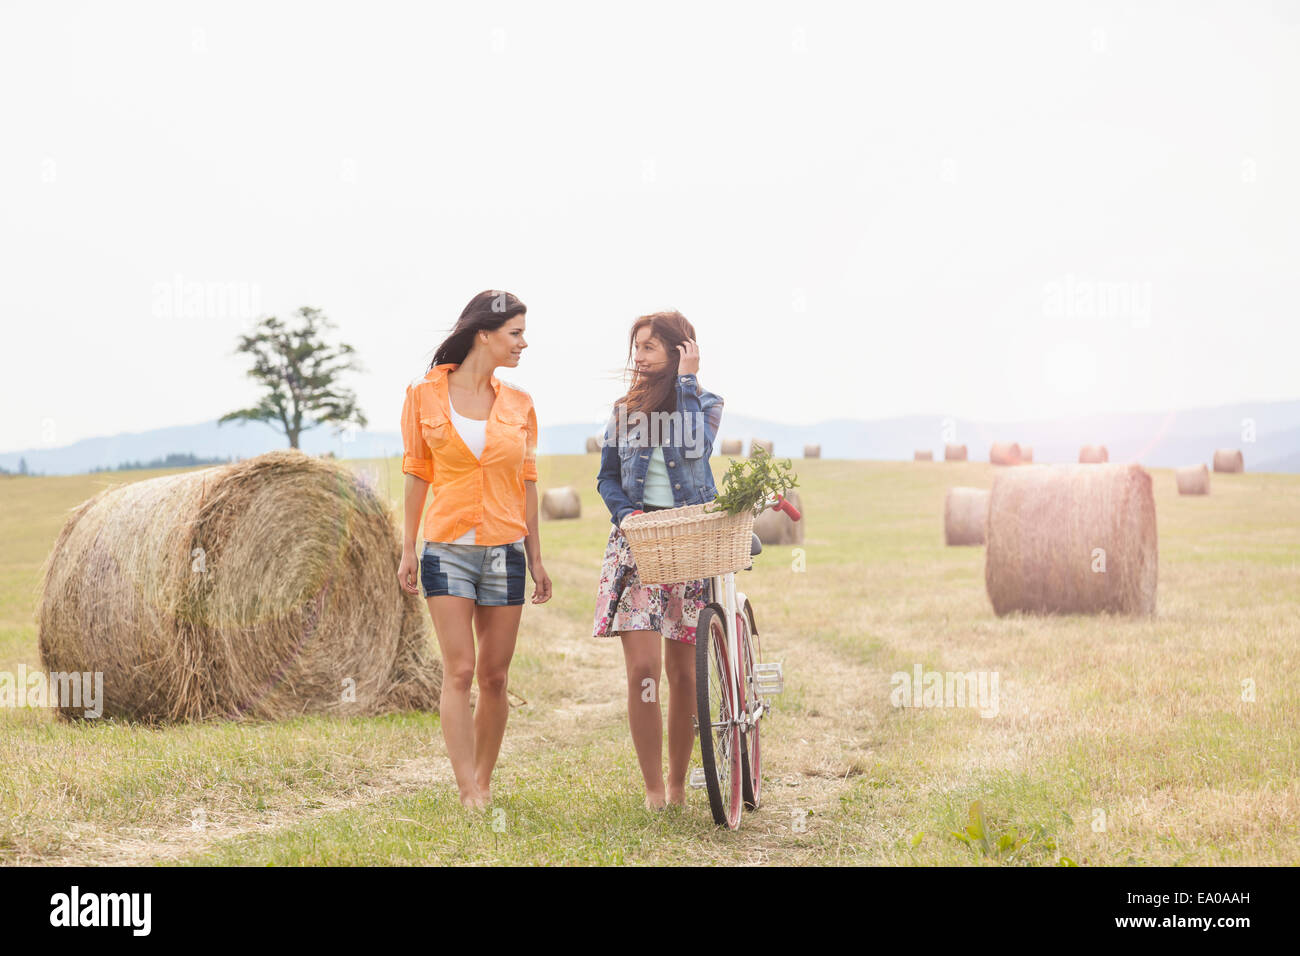 Friends with bicycle walking on field, Roznov, Czech Republic - Stock Image